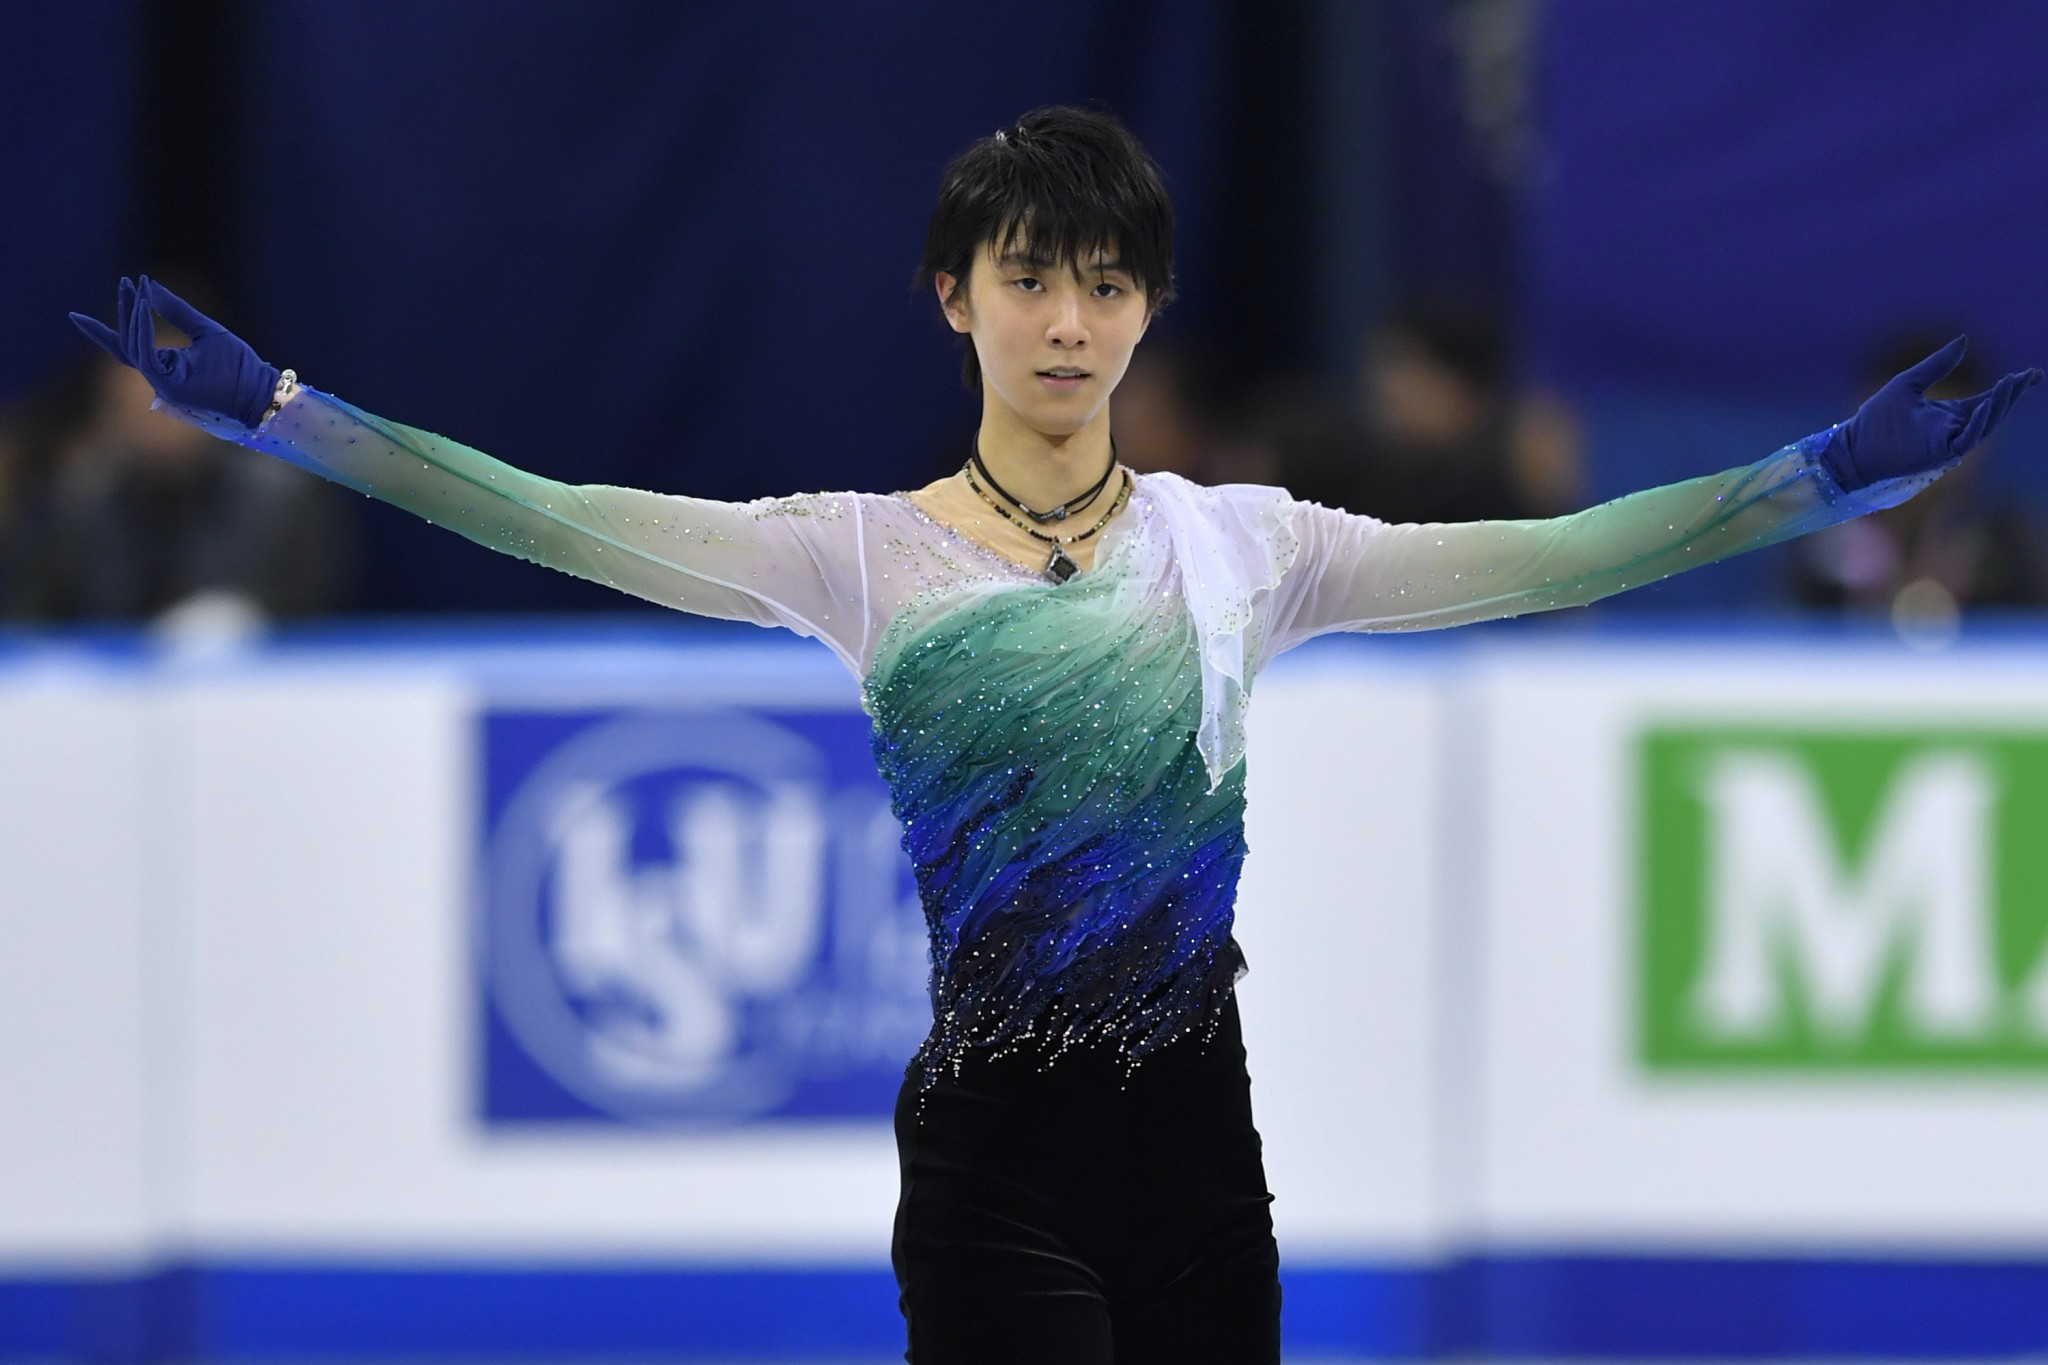 Yuzuru Hanyu has announced the piece of music he will be skating to during the free programme at Pyeongchang 2018 ©Getty Images